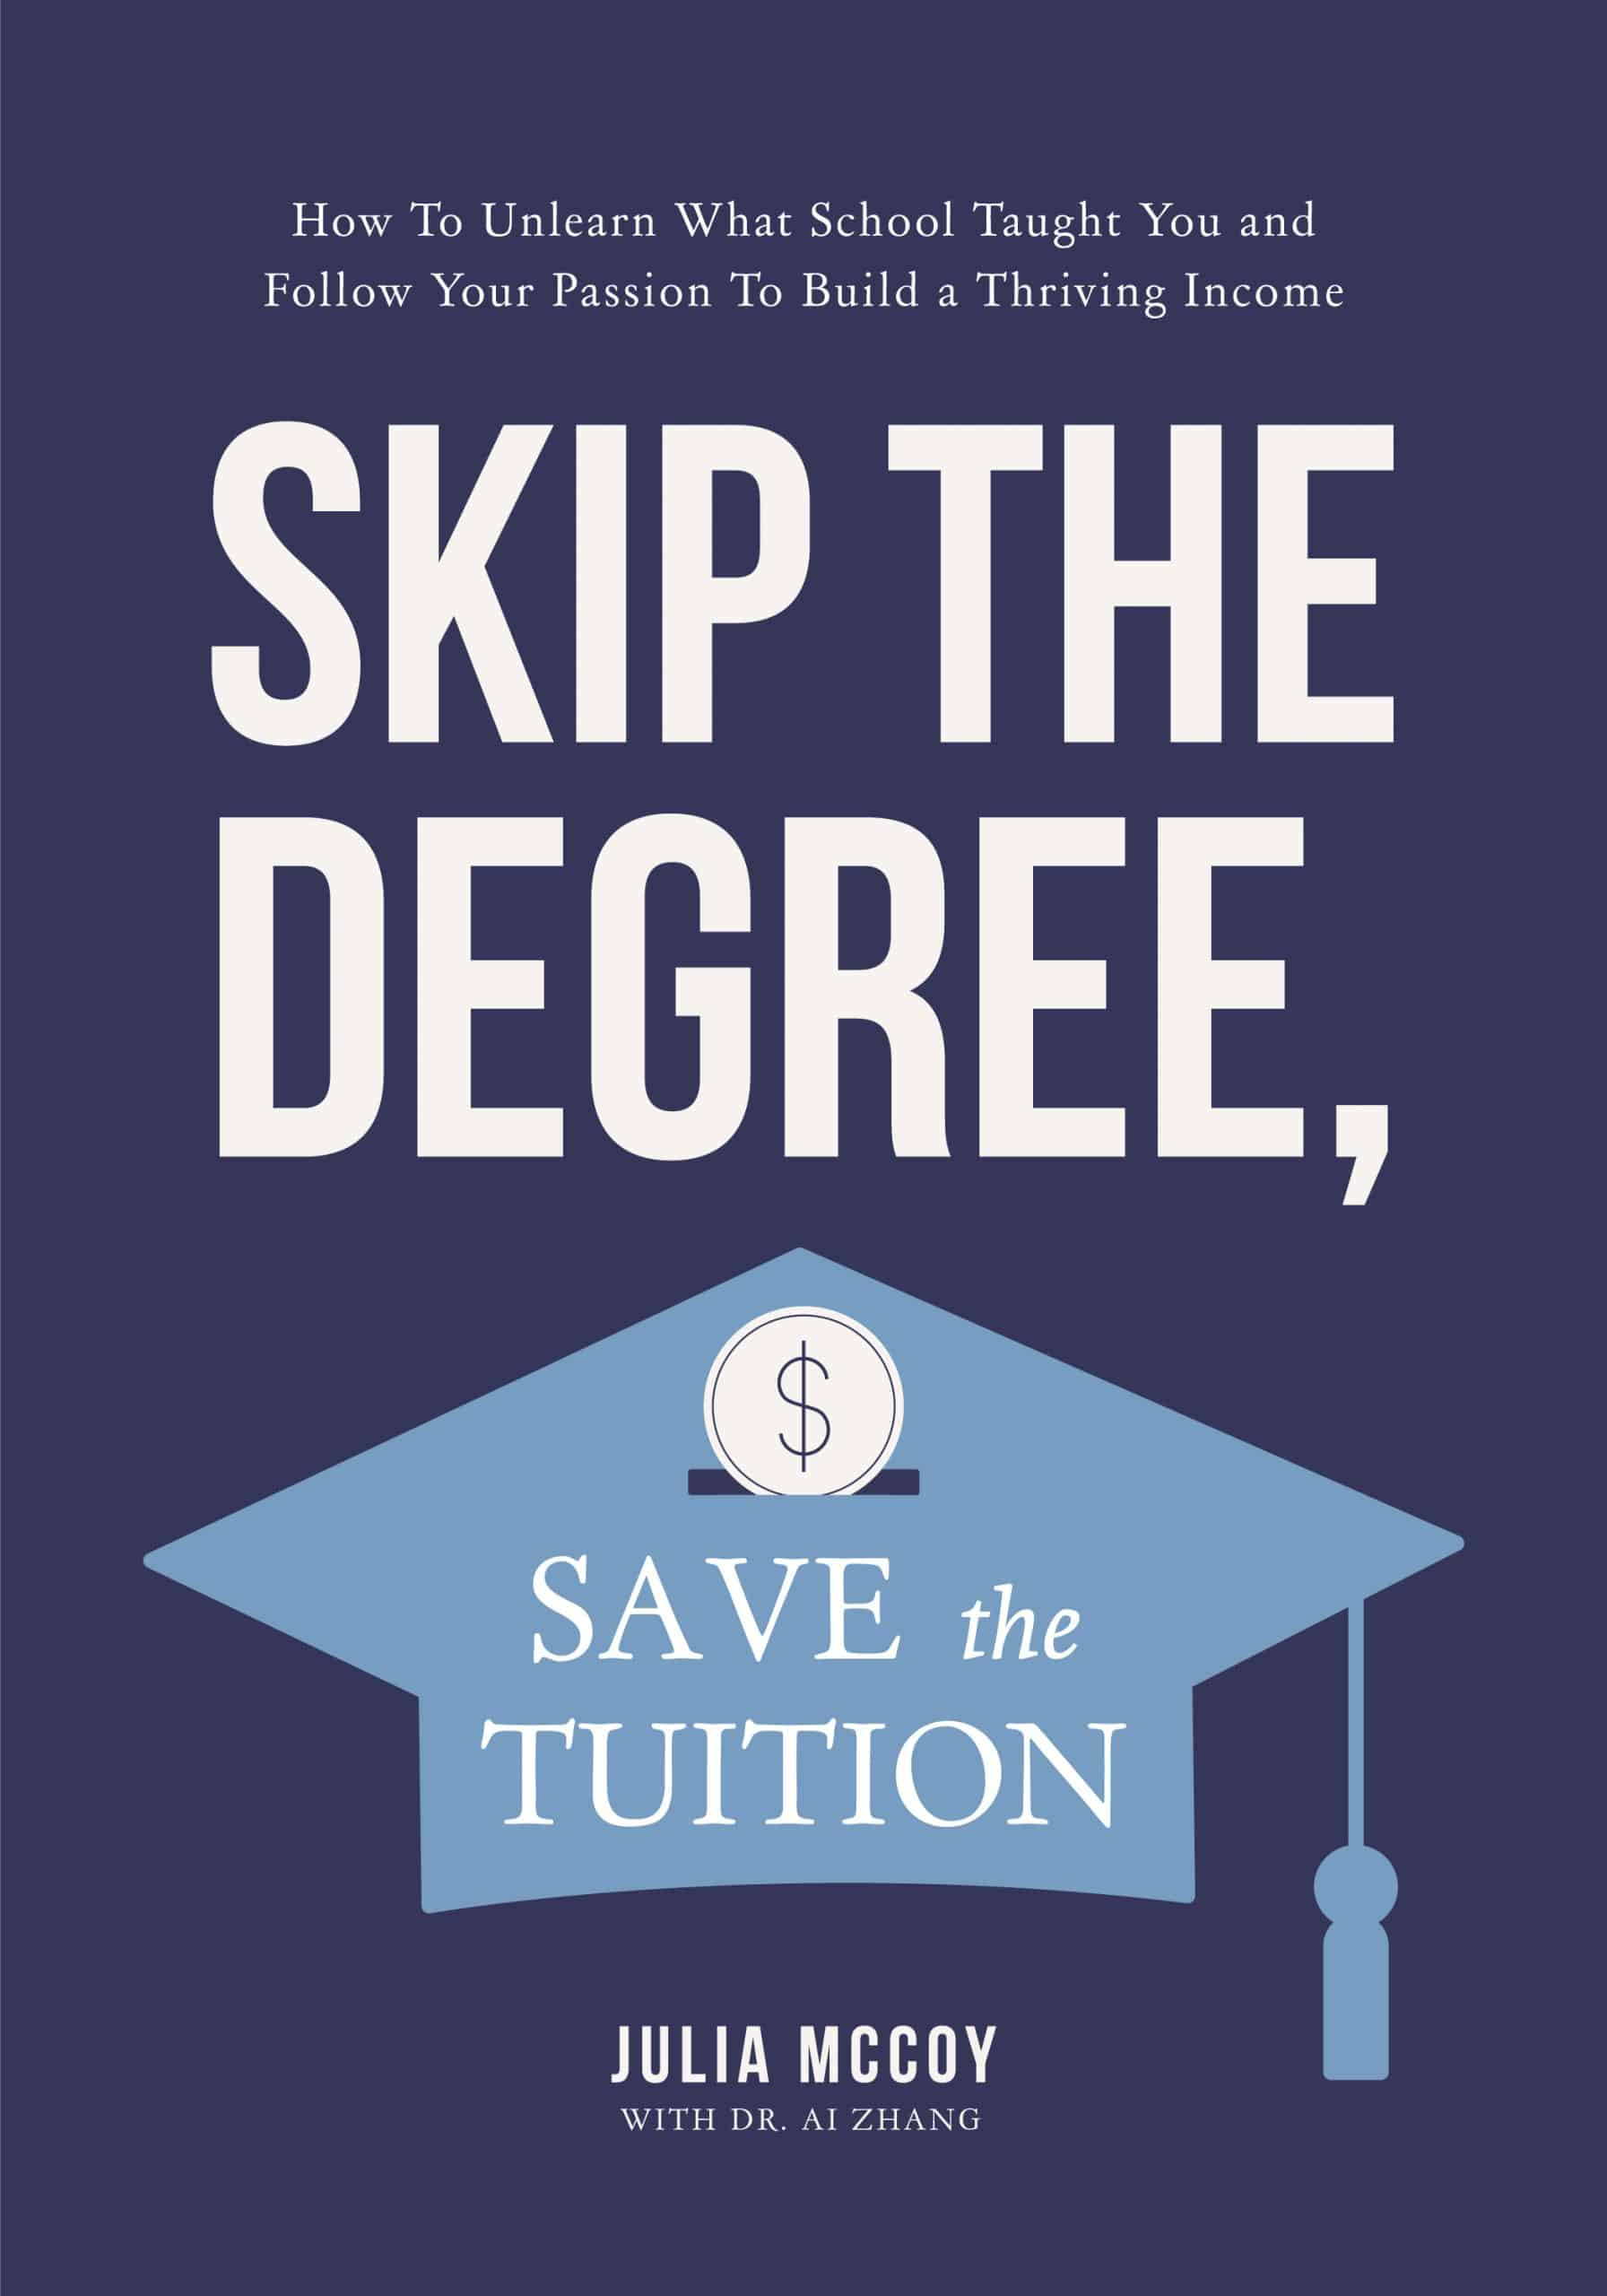 skip the degree save the tuition new book by julia mccoy and ai zhang